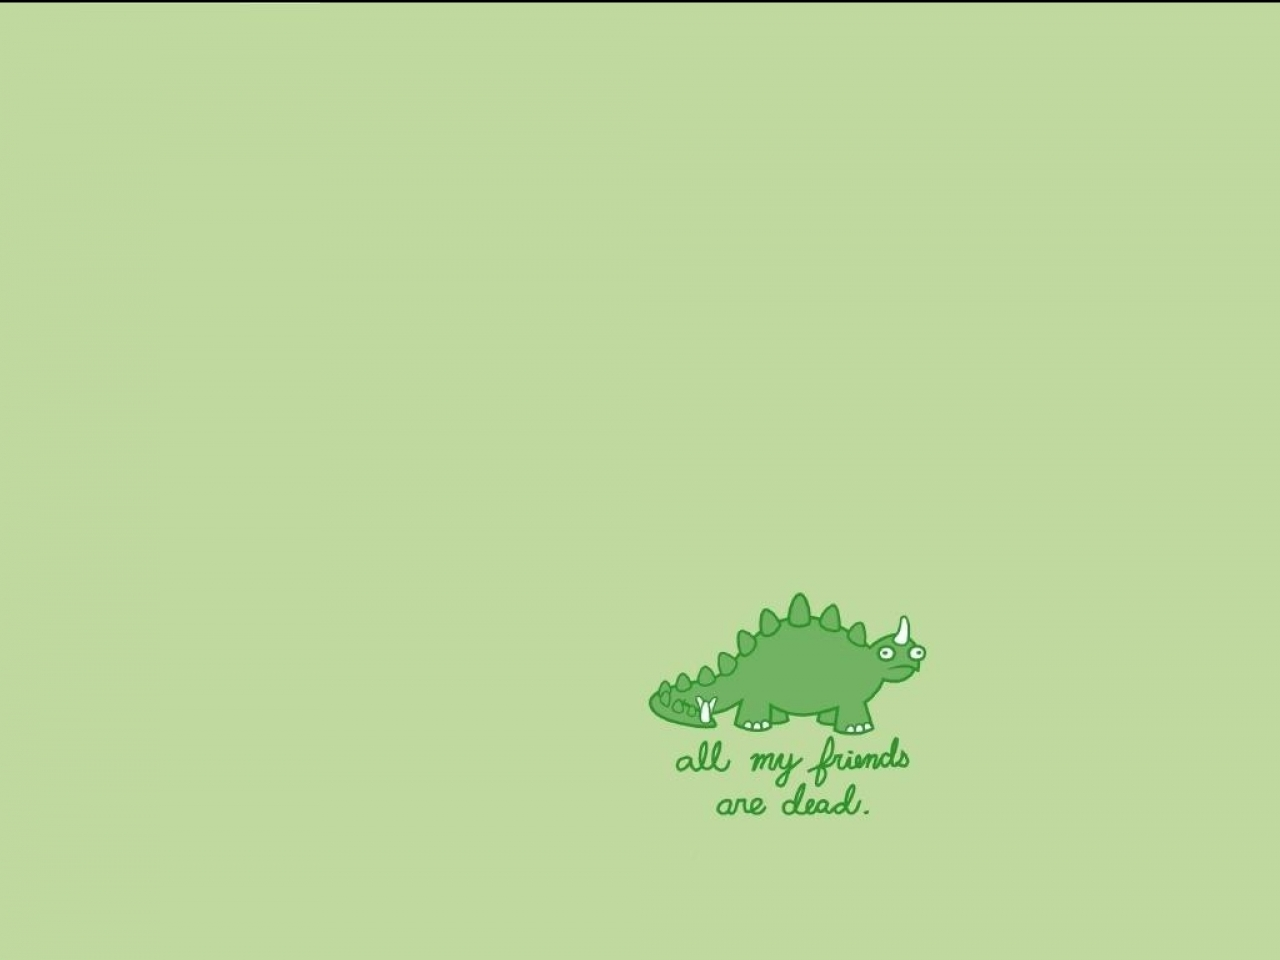 Cute Dino Wallpaper for Pinterest 1280x960